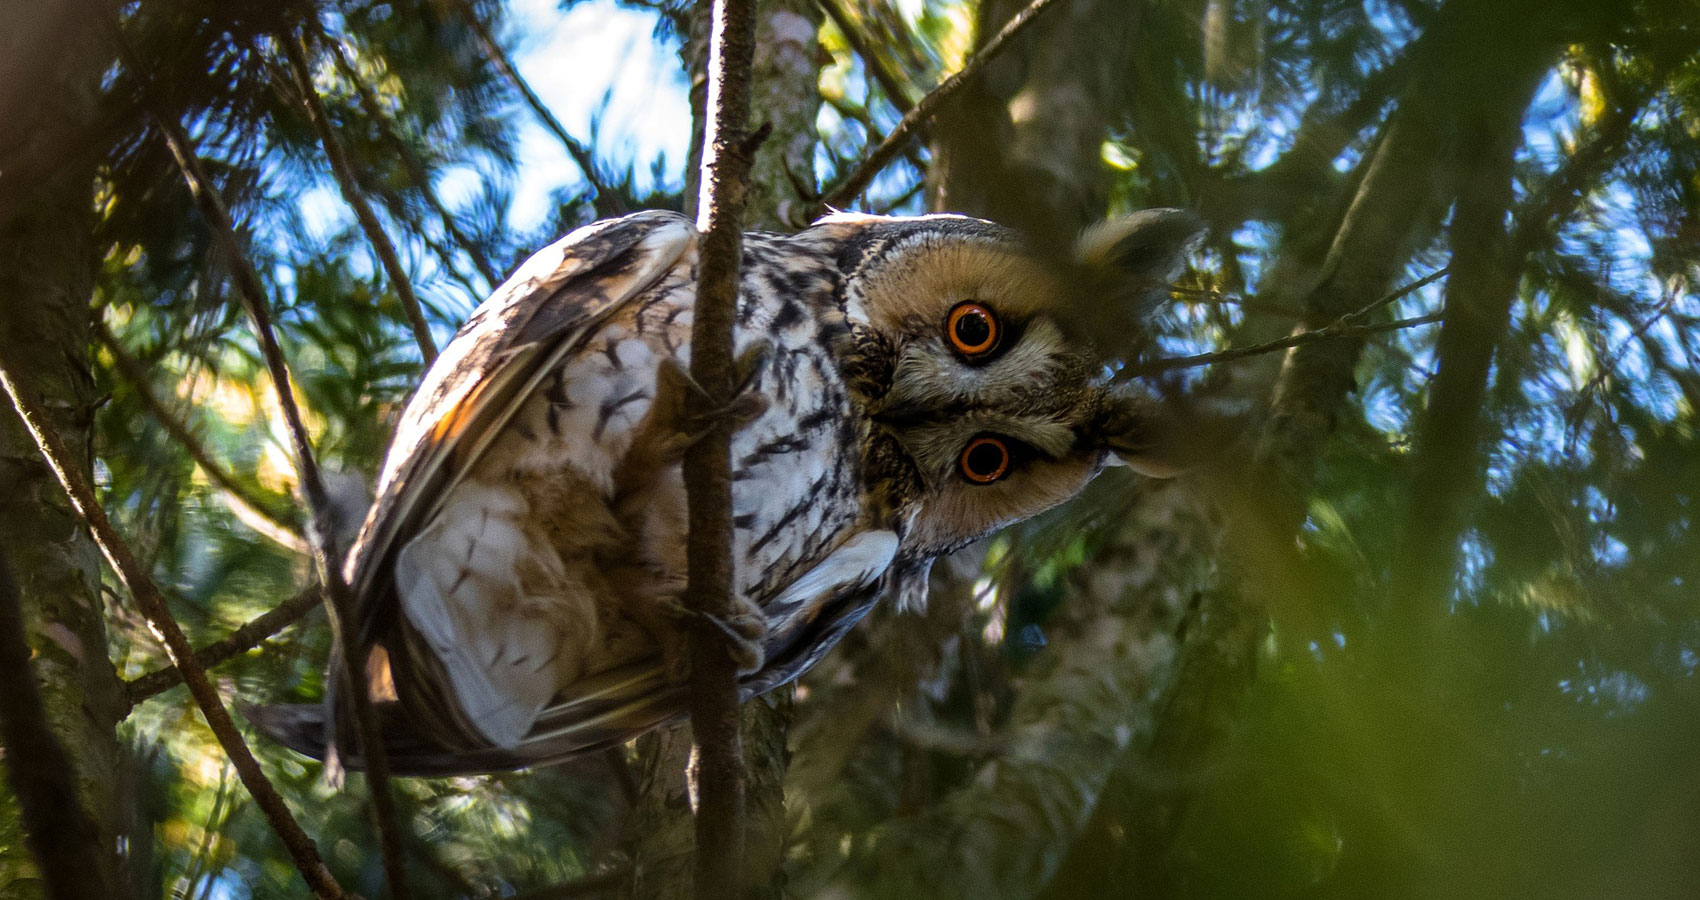 I Just Shot An Owl by Joseph Kachiliko at Spillwords.com